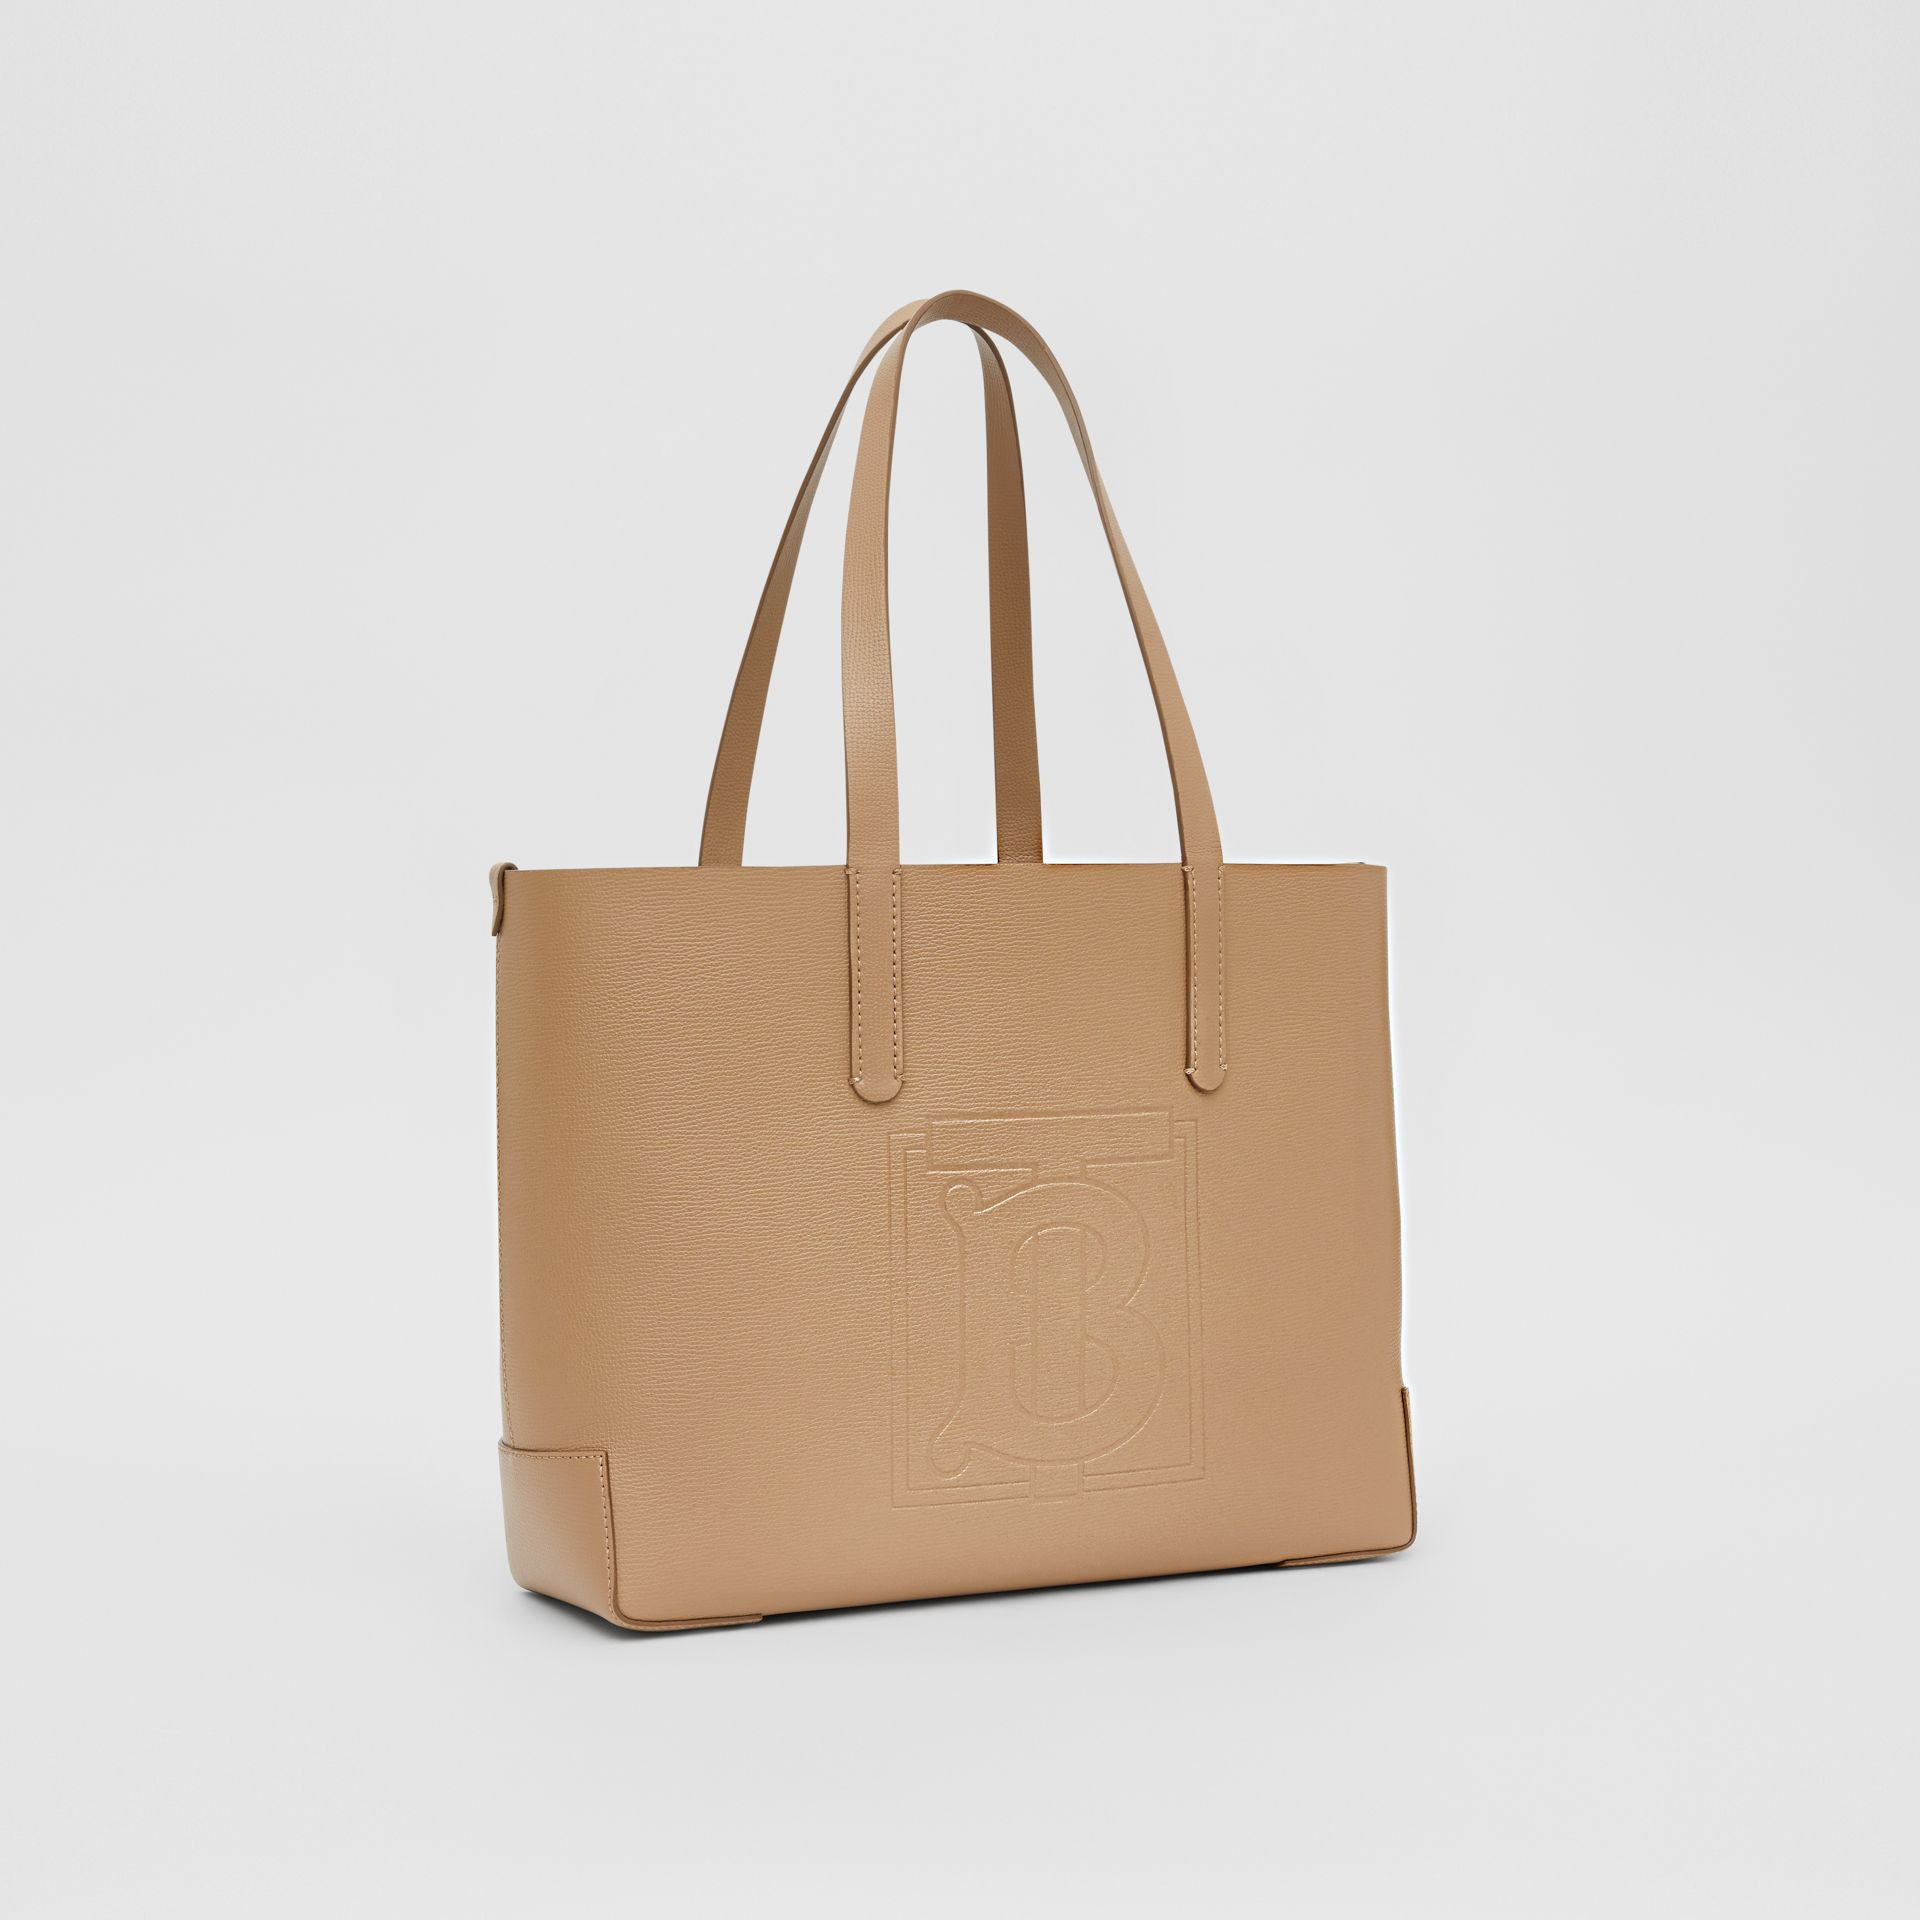 Embossed Monogram Motif Leather Tote in Camel - Women | Burberry - gallery image 8